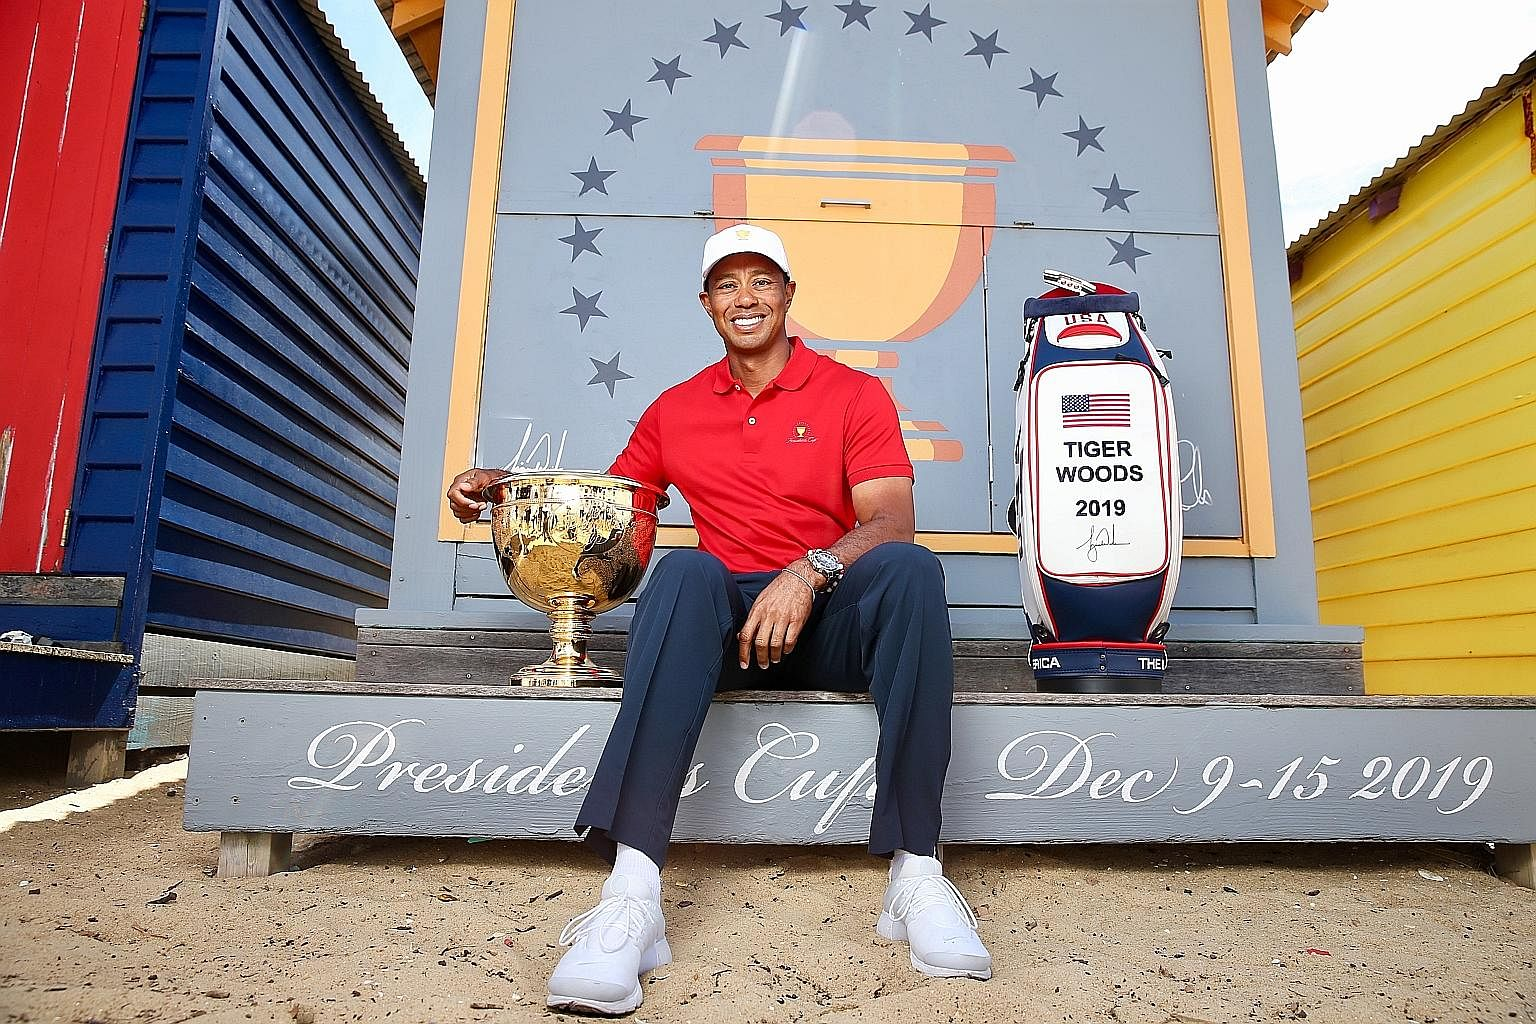 Presidents Cup US captain Tiger Woods is excited with the mix of veteran experience and young talent in his side for the Dec 9-15 tournament at the Royal Melbourne Golf Club.